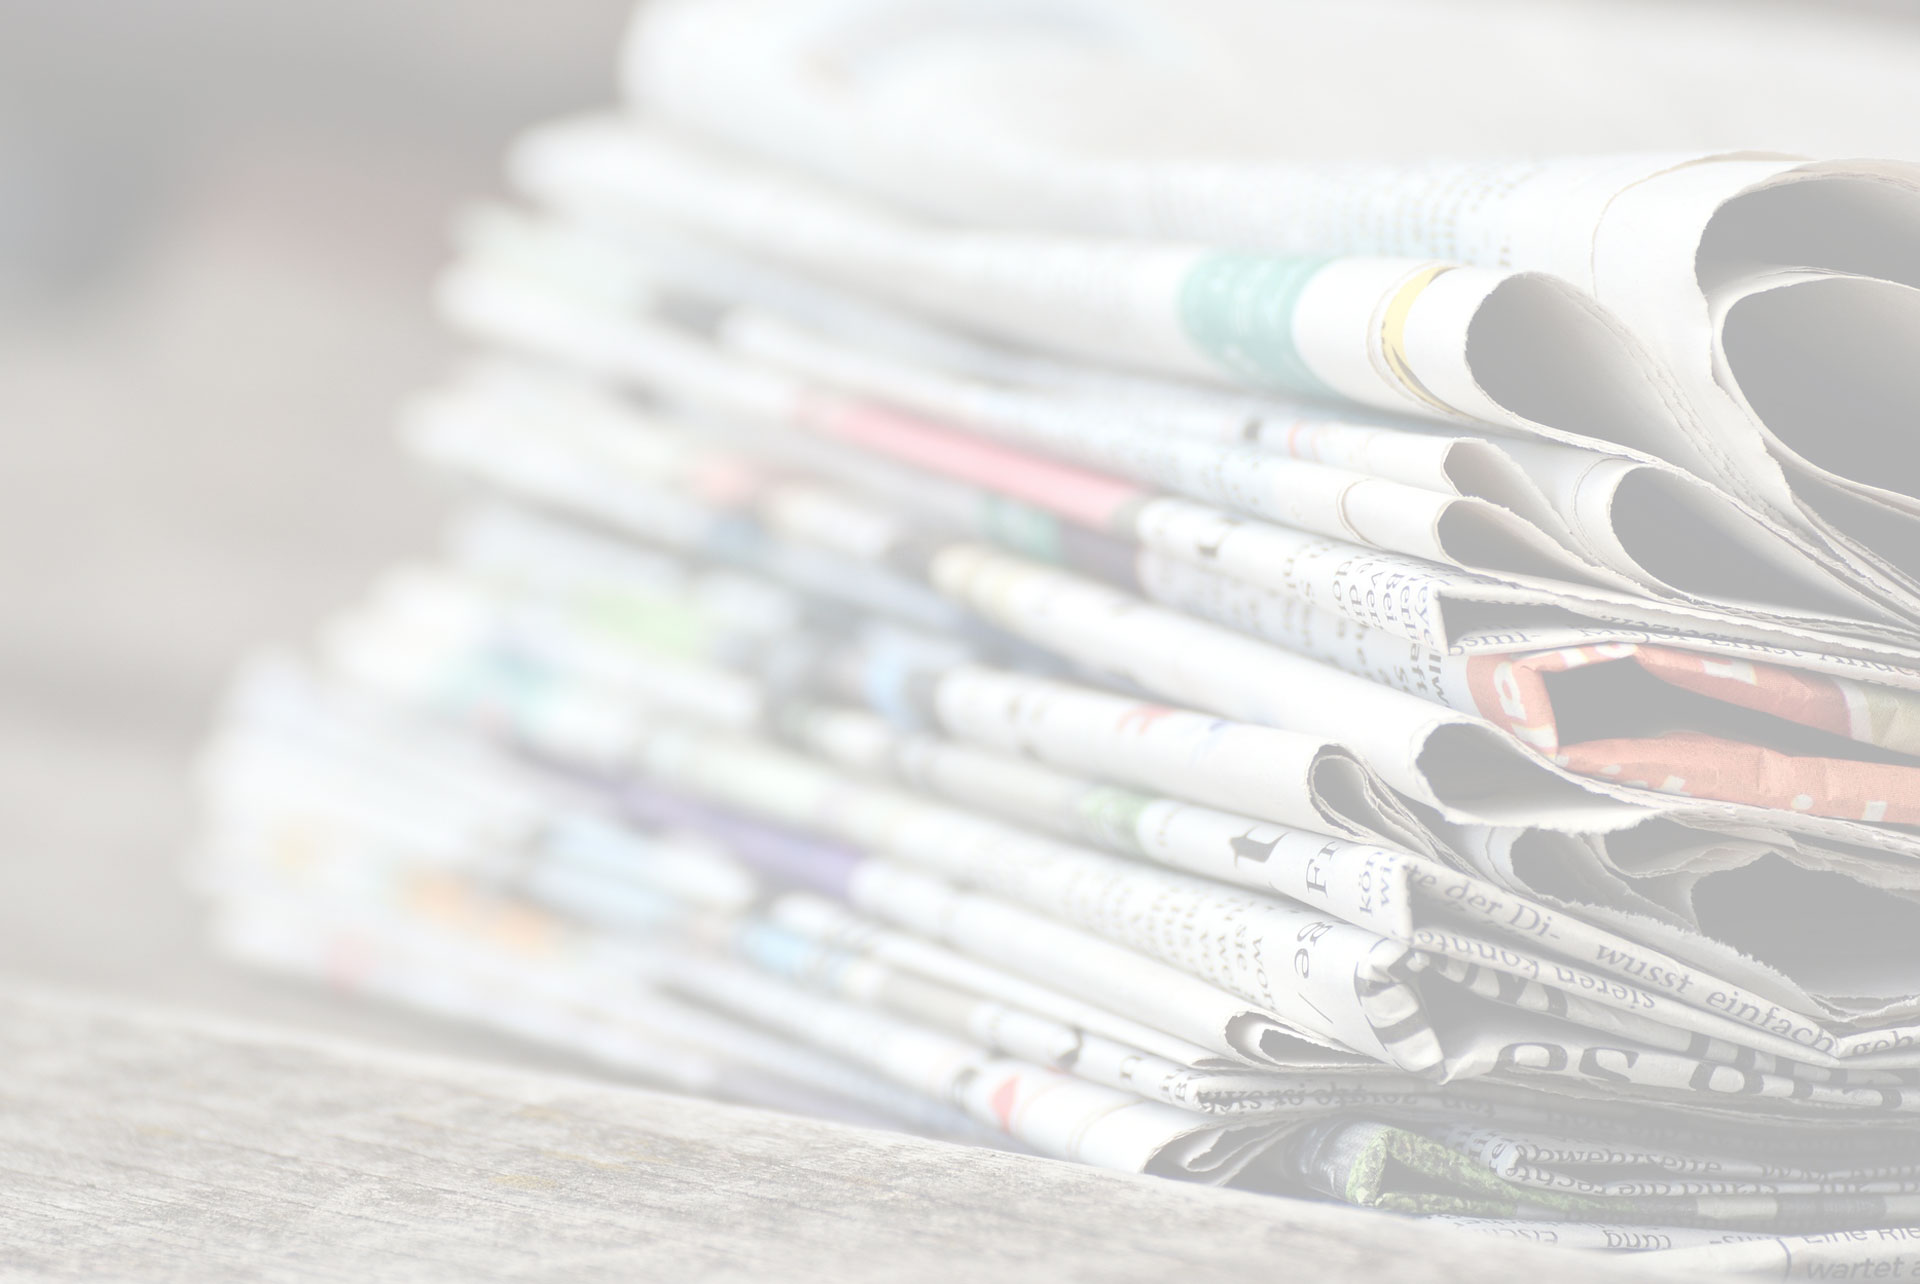 Gennaro Gattuso Francesco Guidolin